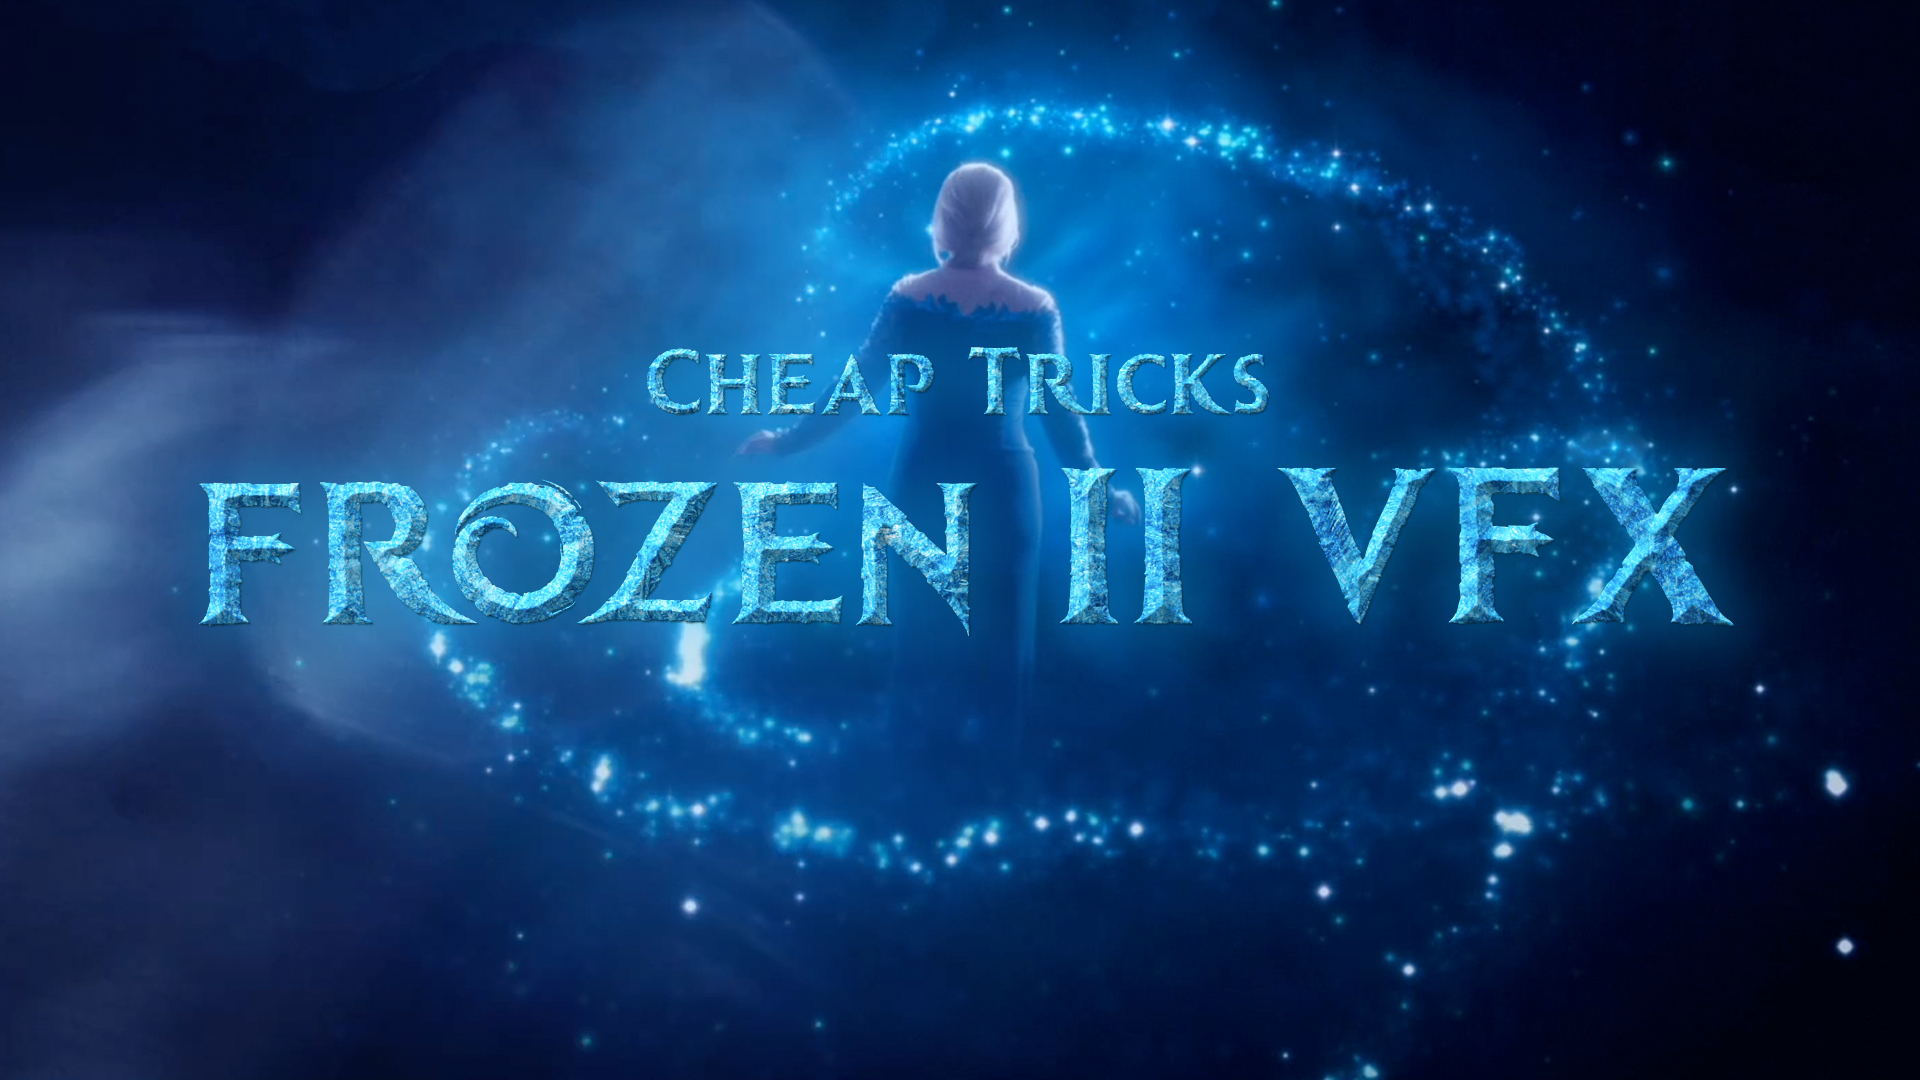 Red Giant - Frozen II VFX